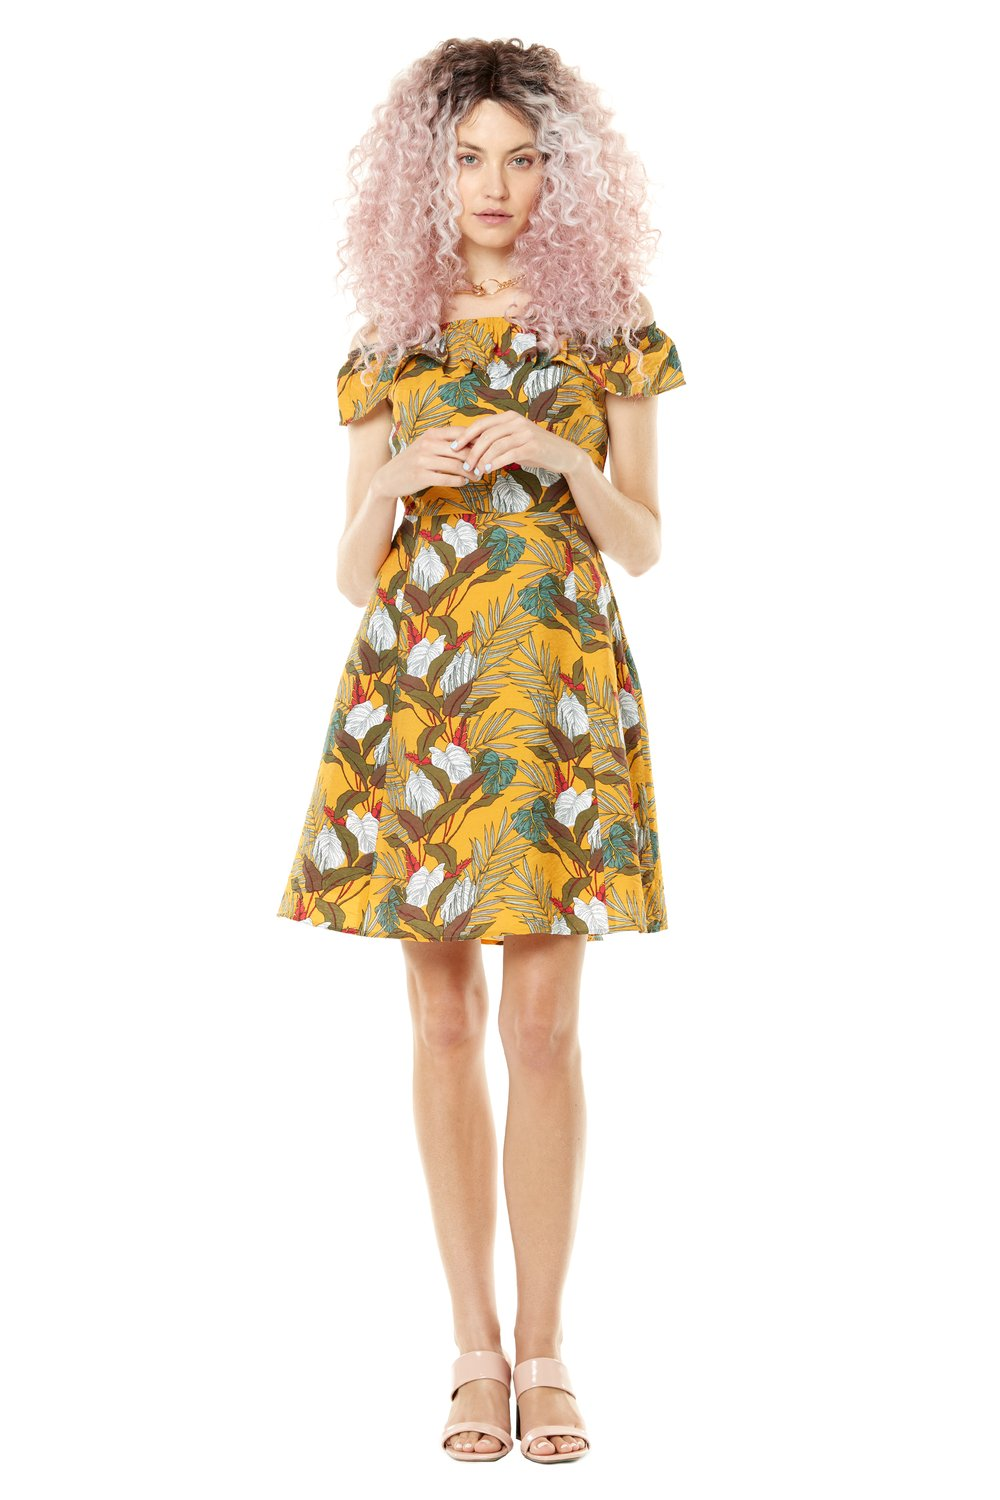 Lollipop Dress by Annie 50, Yellow Leaves, off the shoulder, fit and flare dress, sizes XS to L, made in Quebec